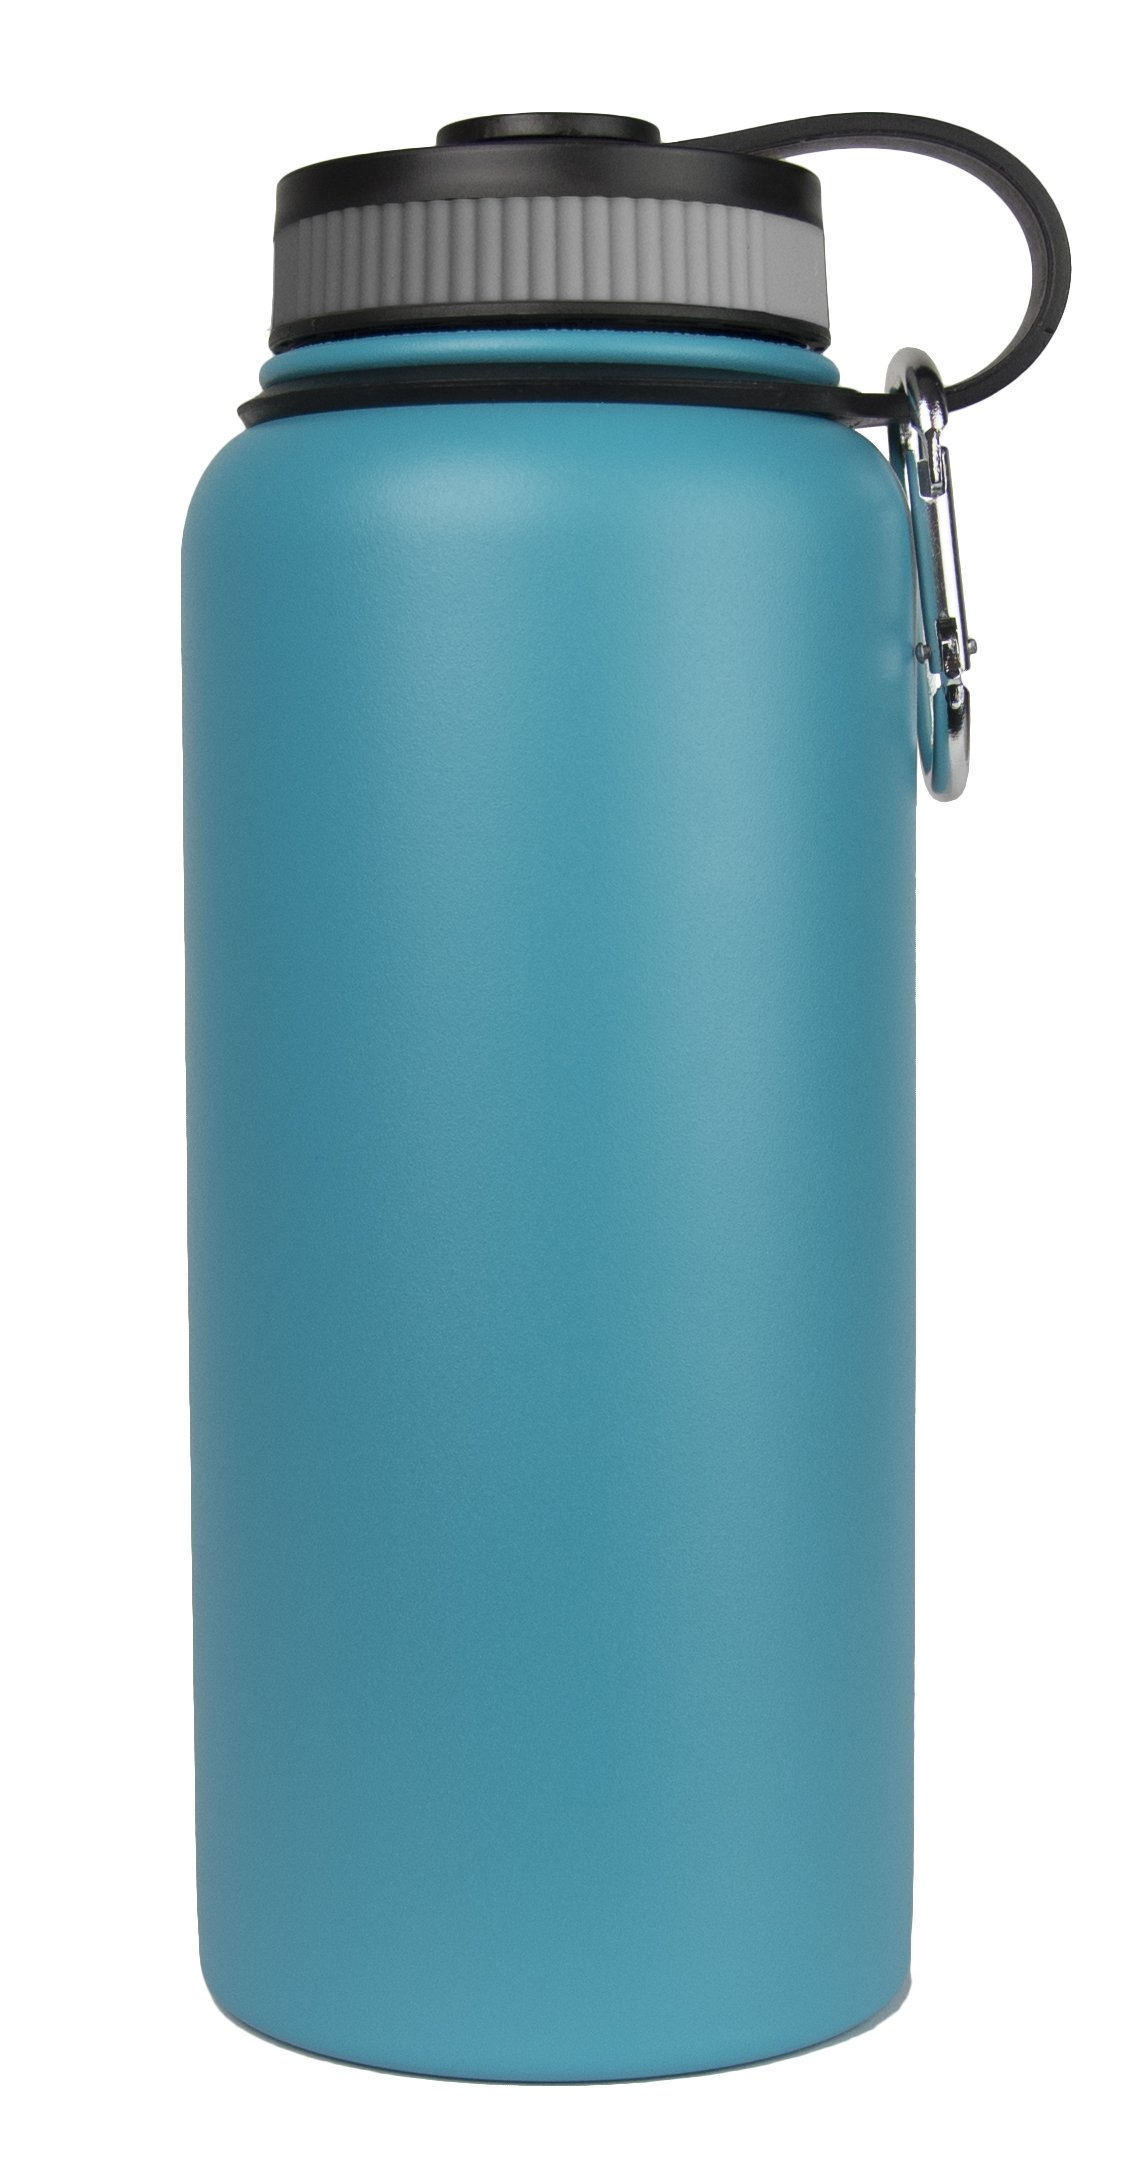 Sarge Knives WB-32T 32 oz Stainless Steel Teal Wave Bottle